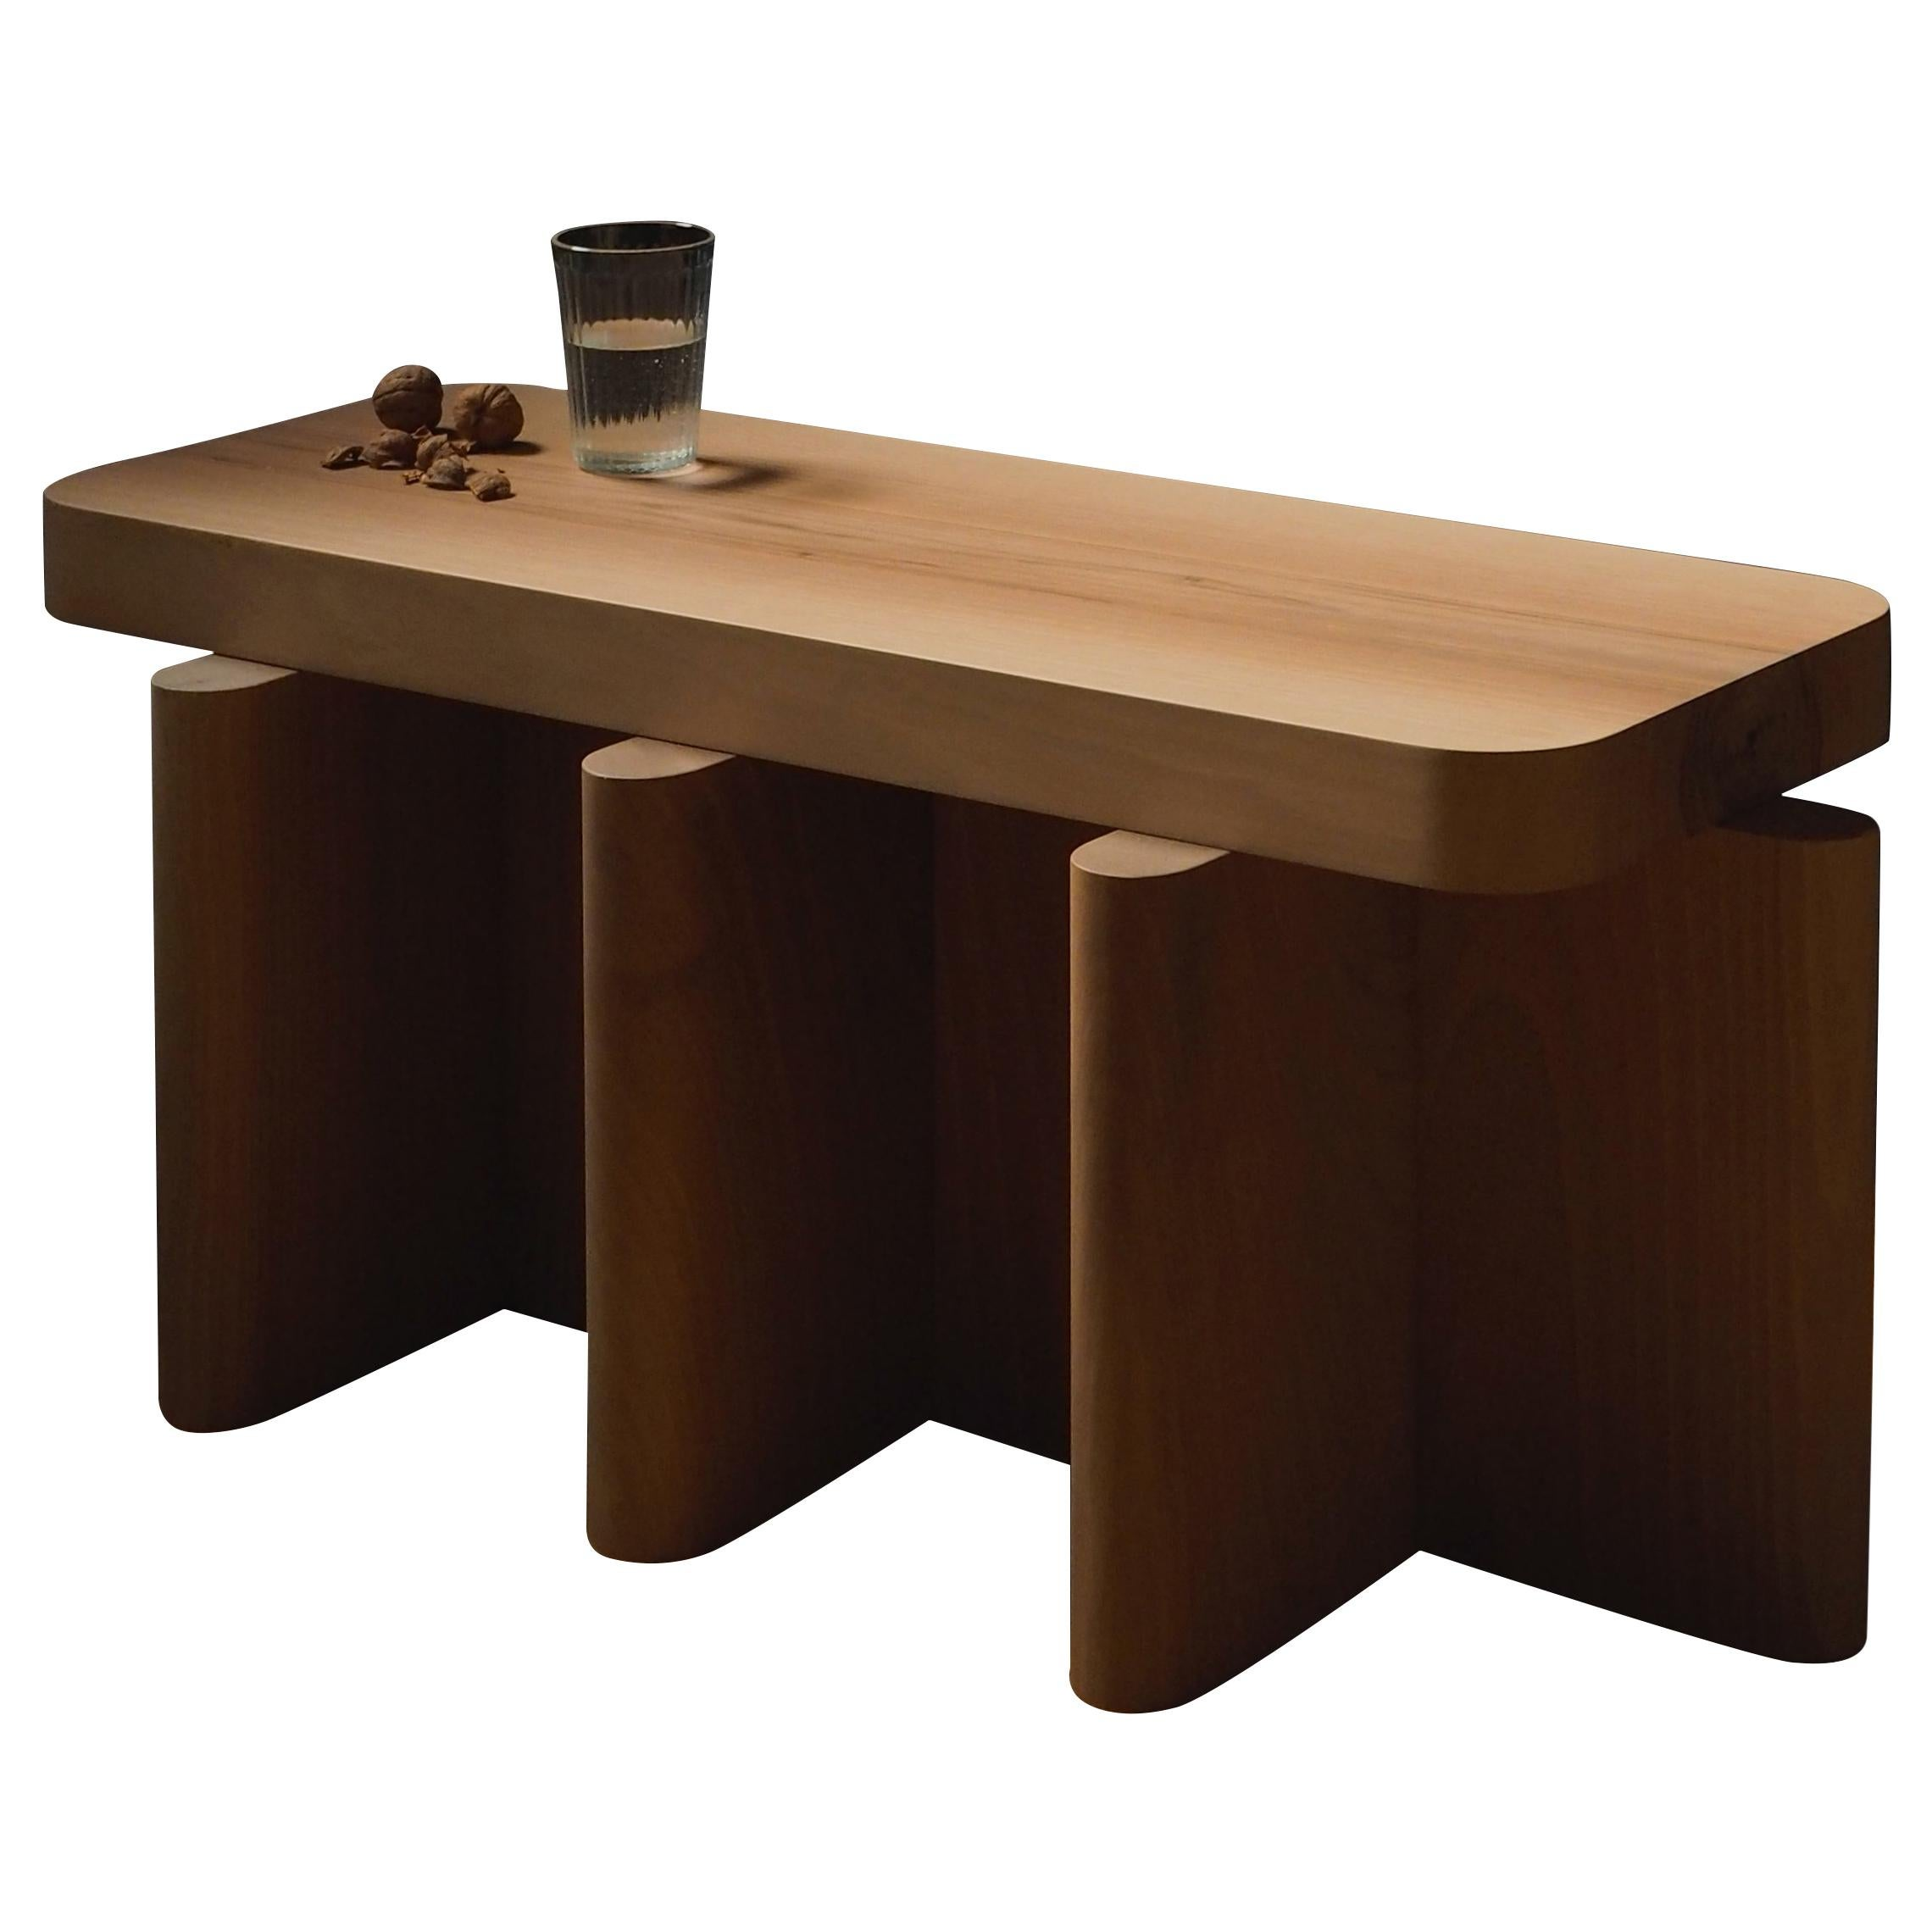 Spina Side Table in Wood 3 Edited by Portego Customizable